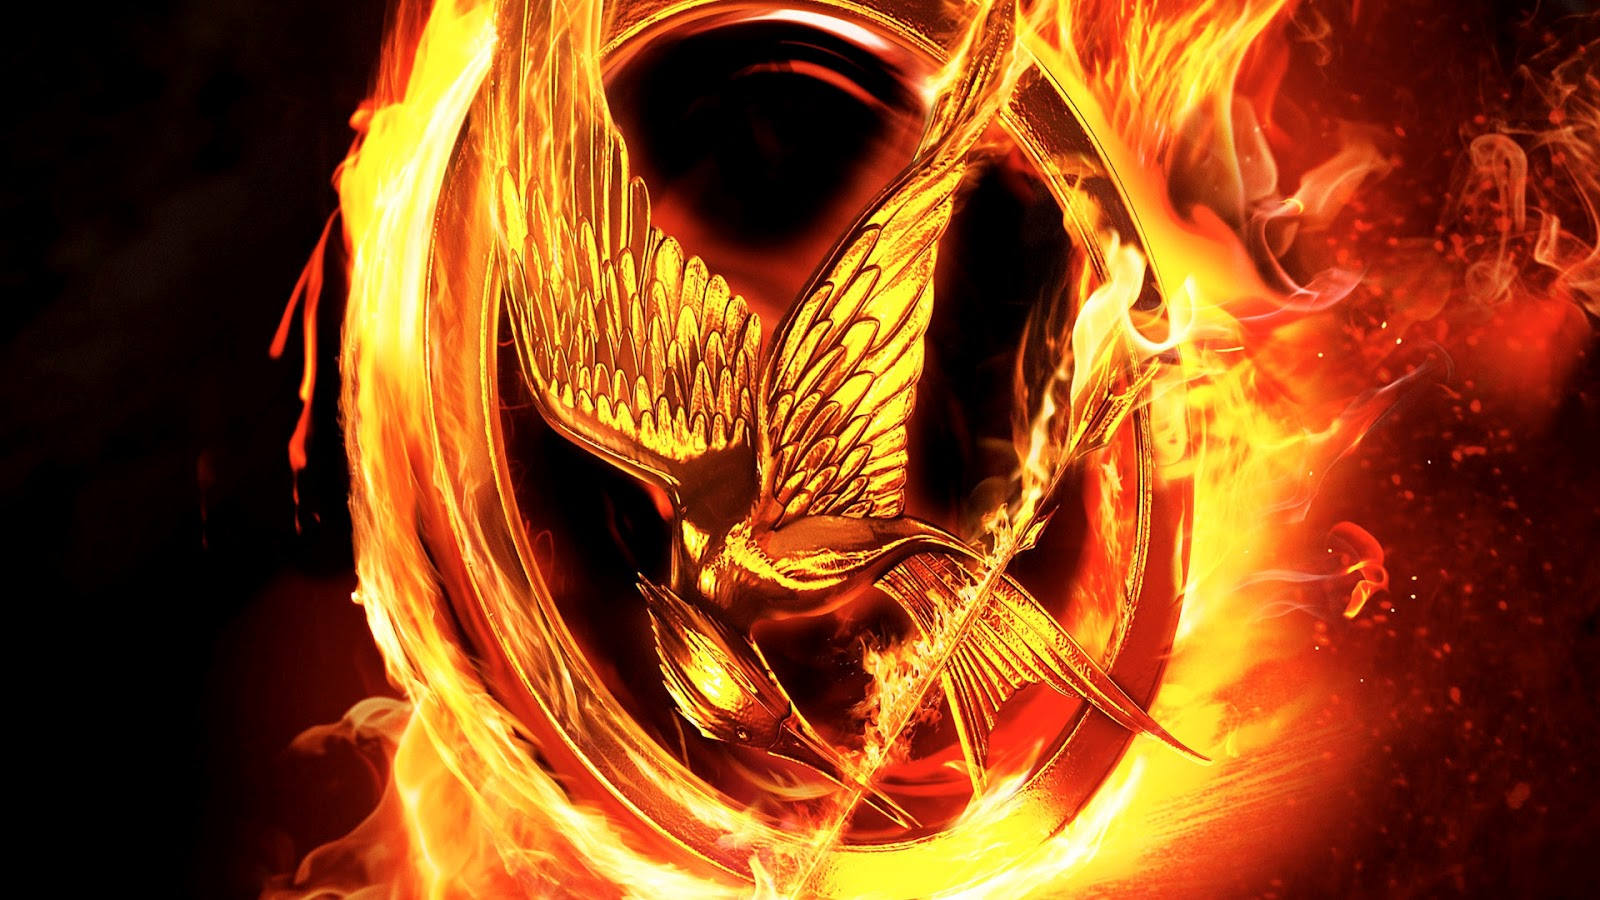 The Hunger Games Wallpaper Games PC Downloads 1600x900